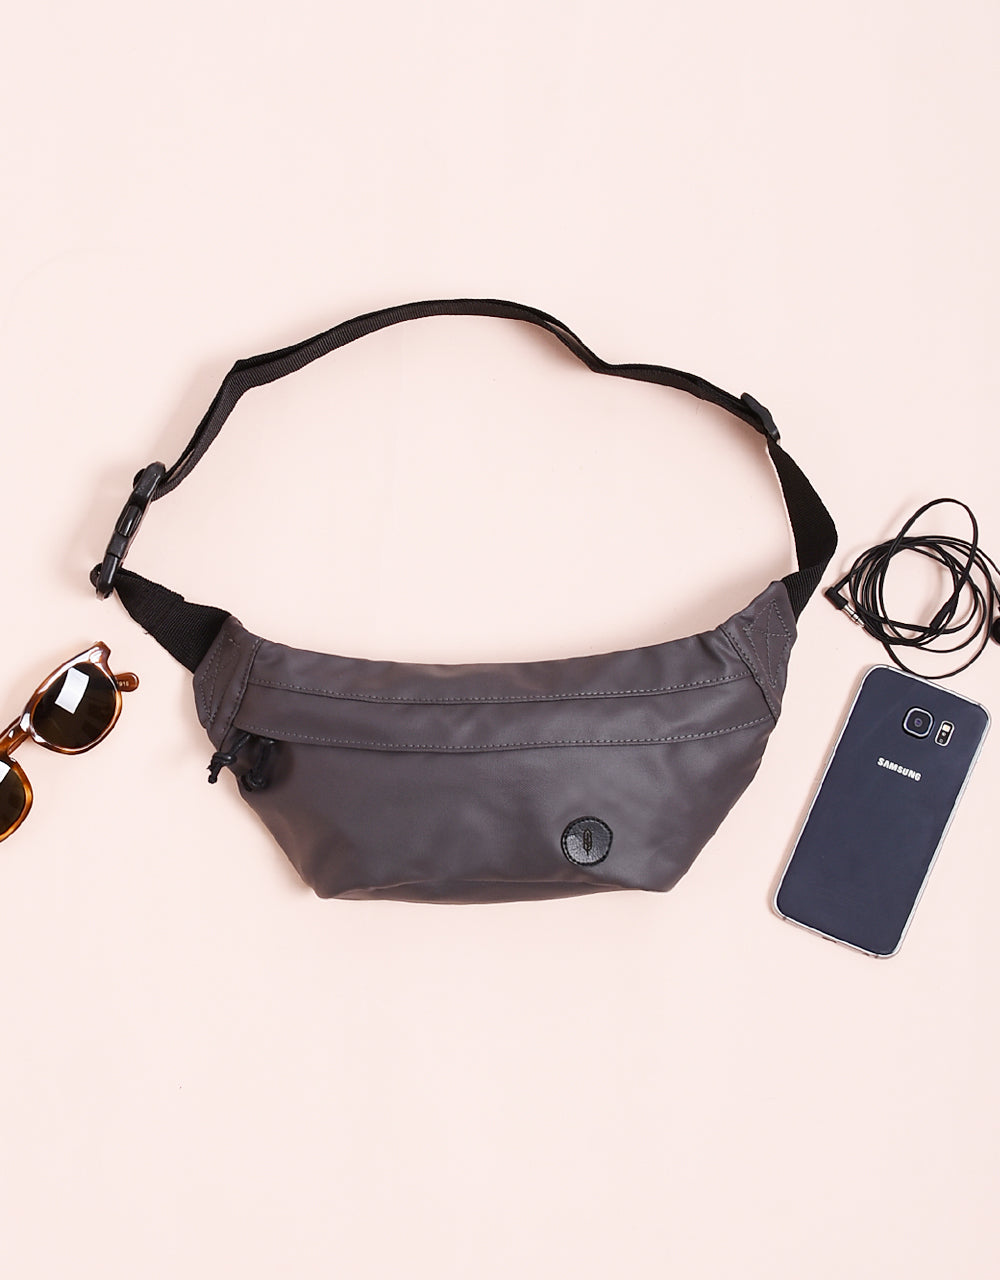 Viscious 4 Waist Bag